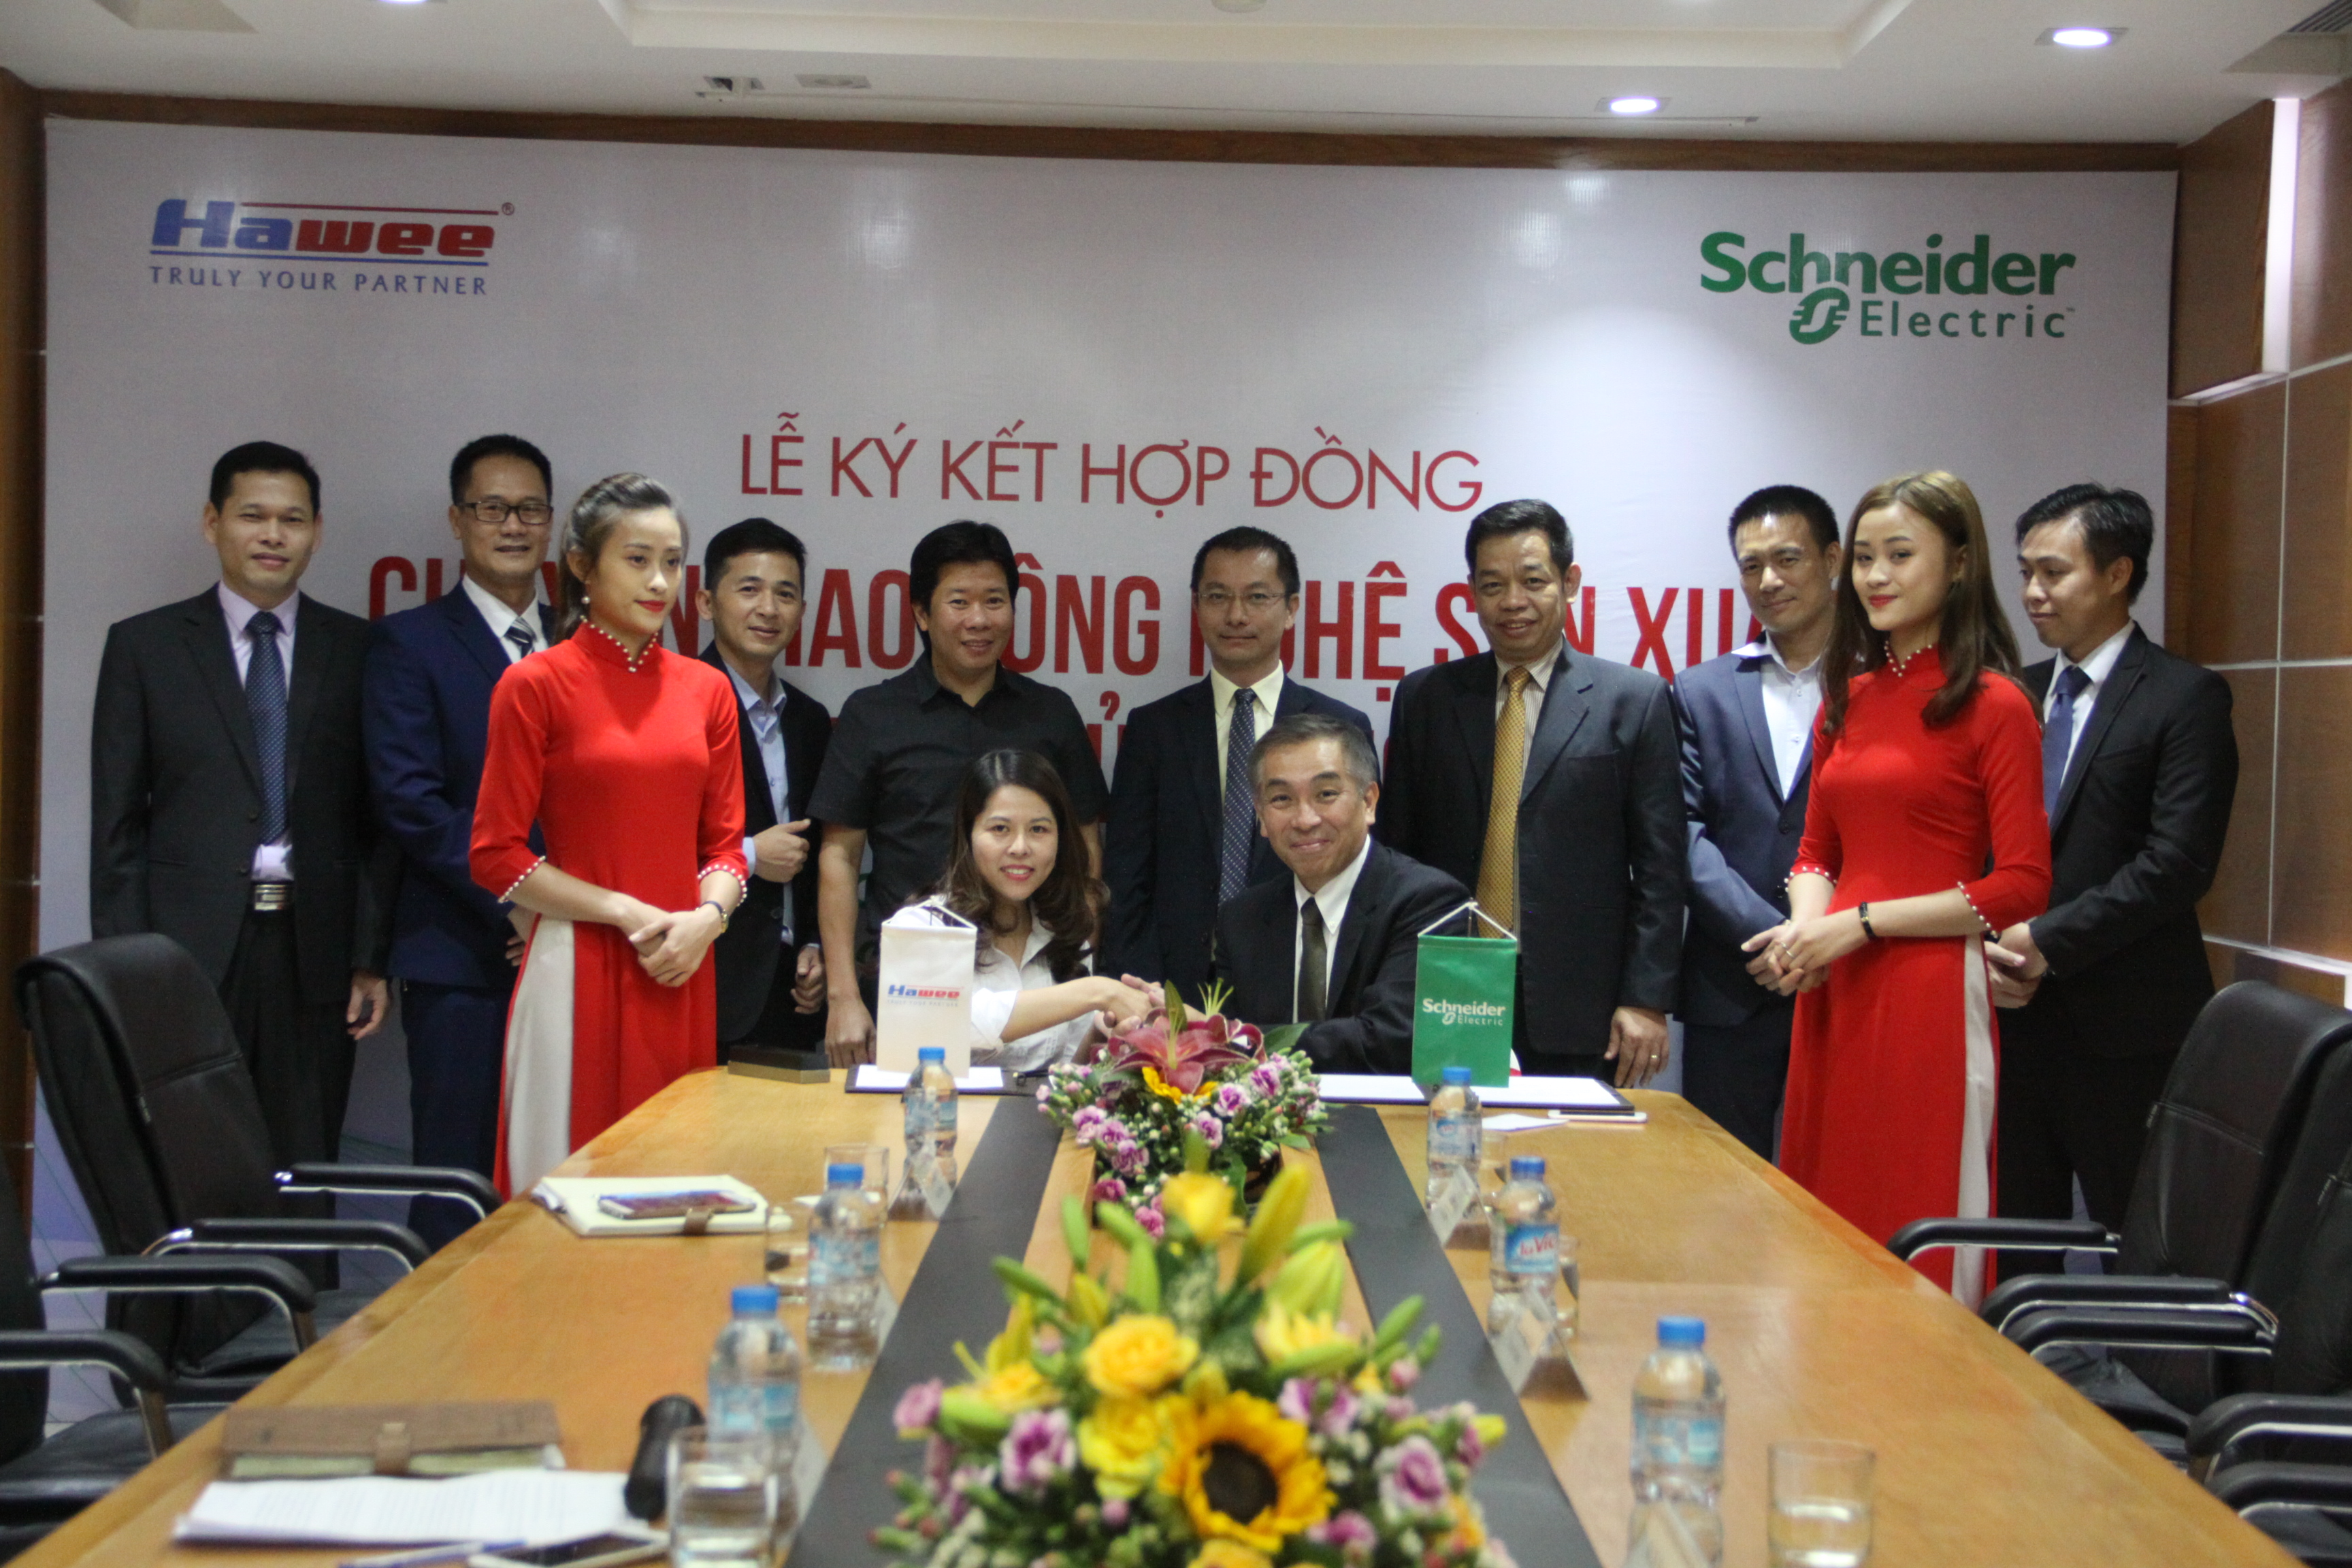 Schneider Electric and Hawee enter collaborative technology license deal